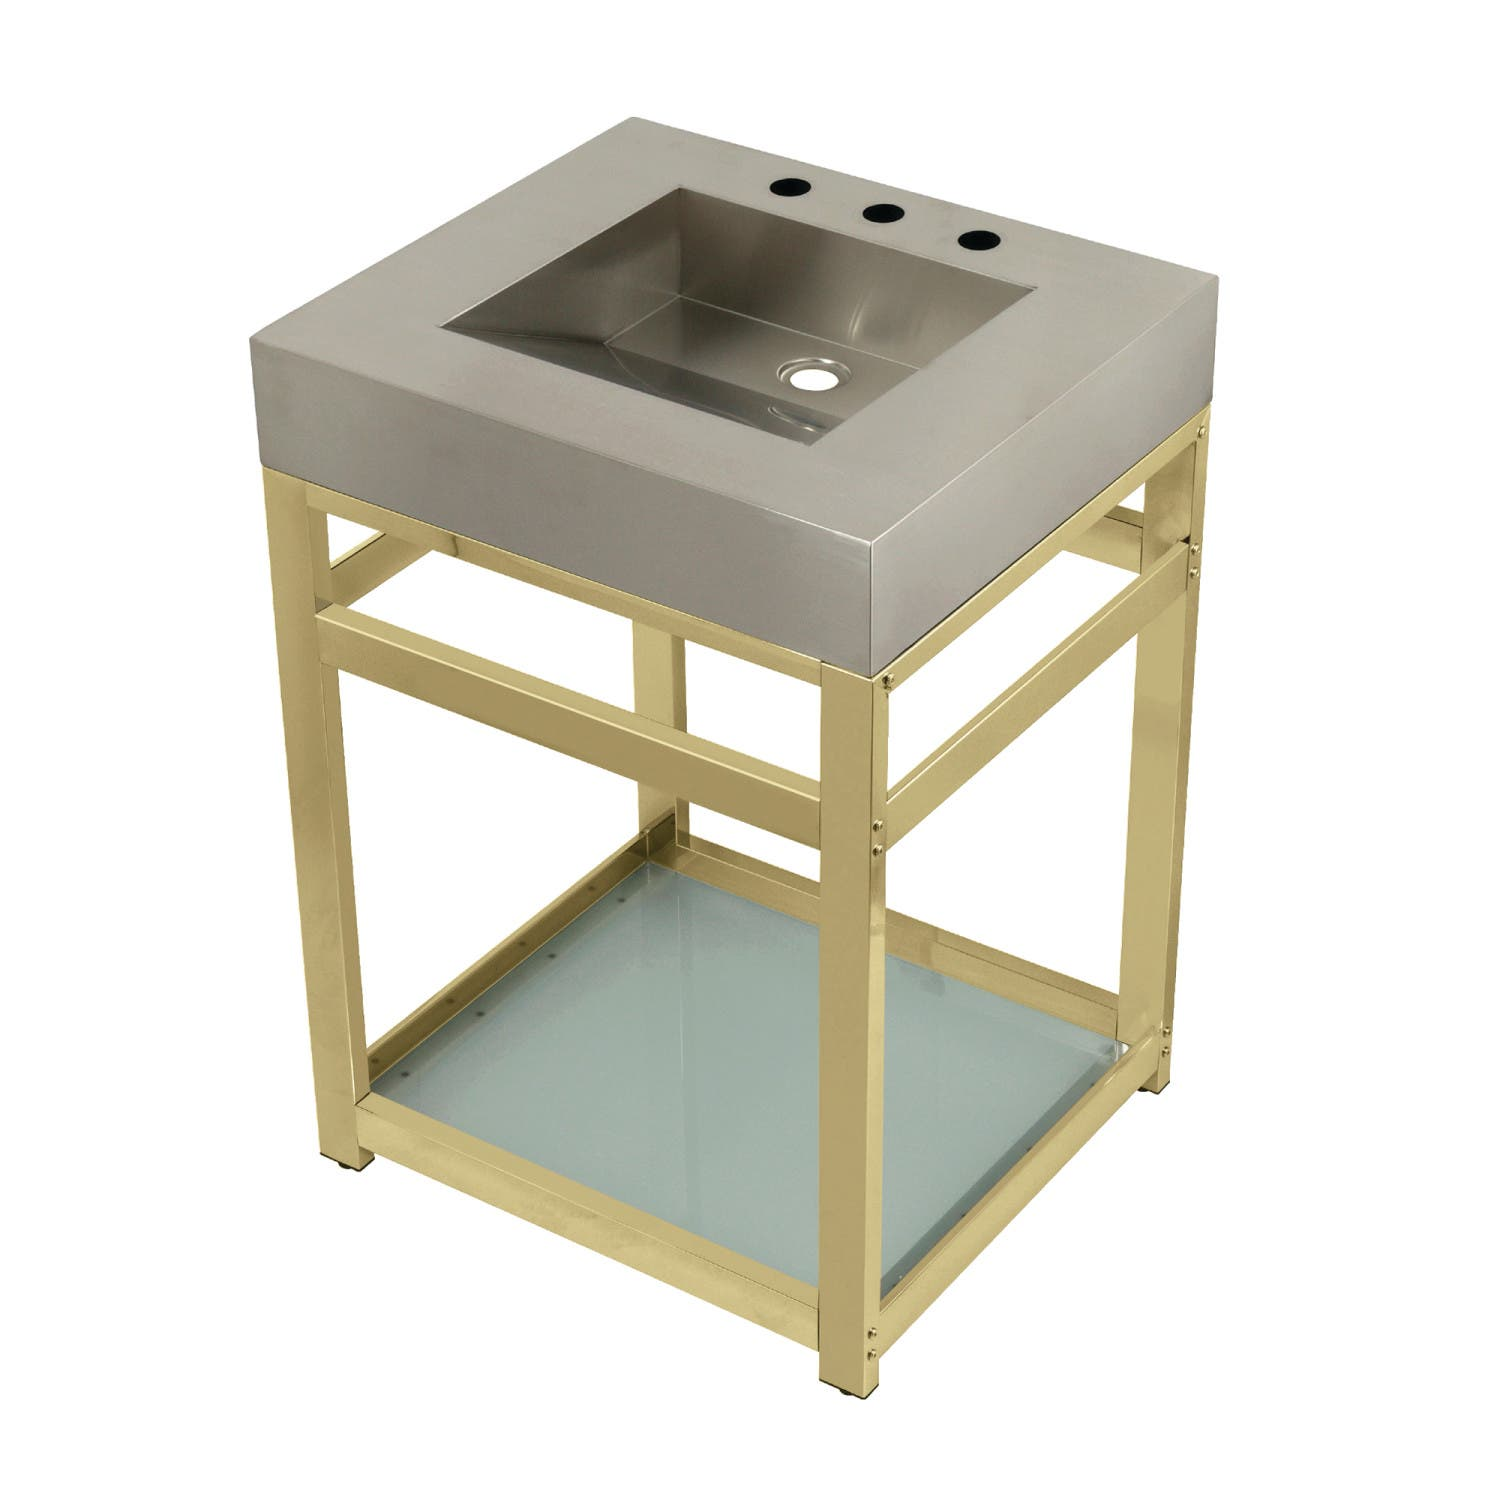 Kingston Brass Kvsp2522b2 Fauceture 25 Stainless Steel Sink With Steel Console Sink Base Brushed Polished Brass Kingston Brass